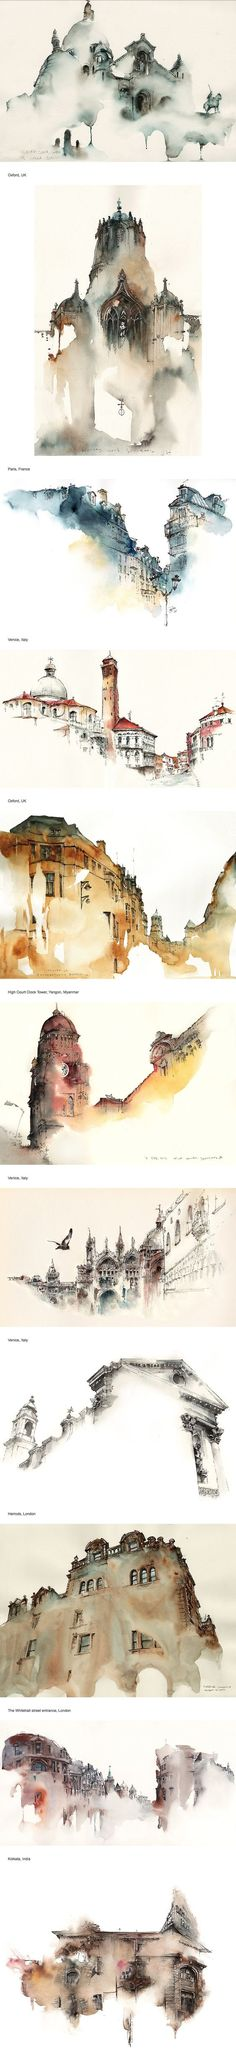 Elusive Architecture in Watercolors of Korean Artist Sunga Park:                                                                                                                                                                                 More